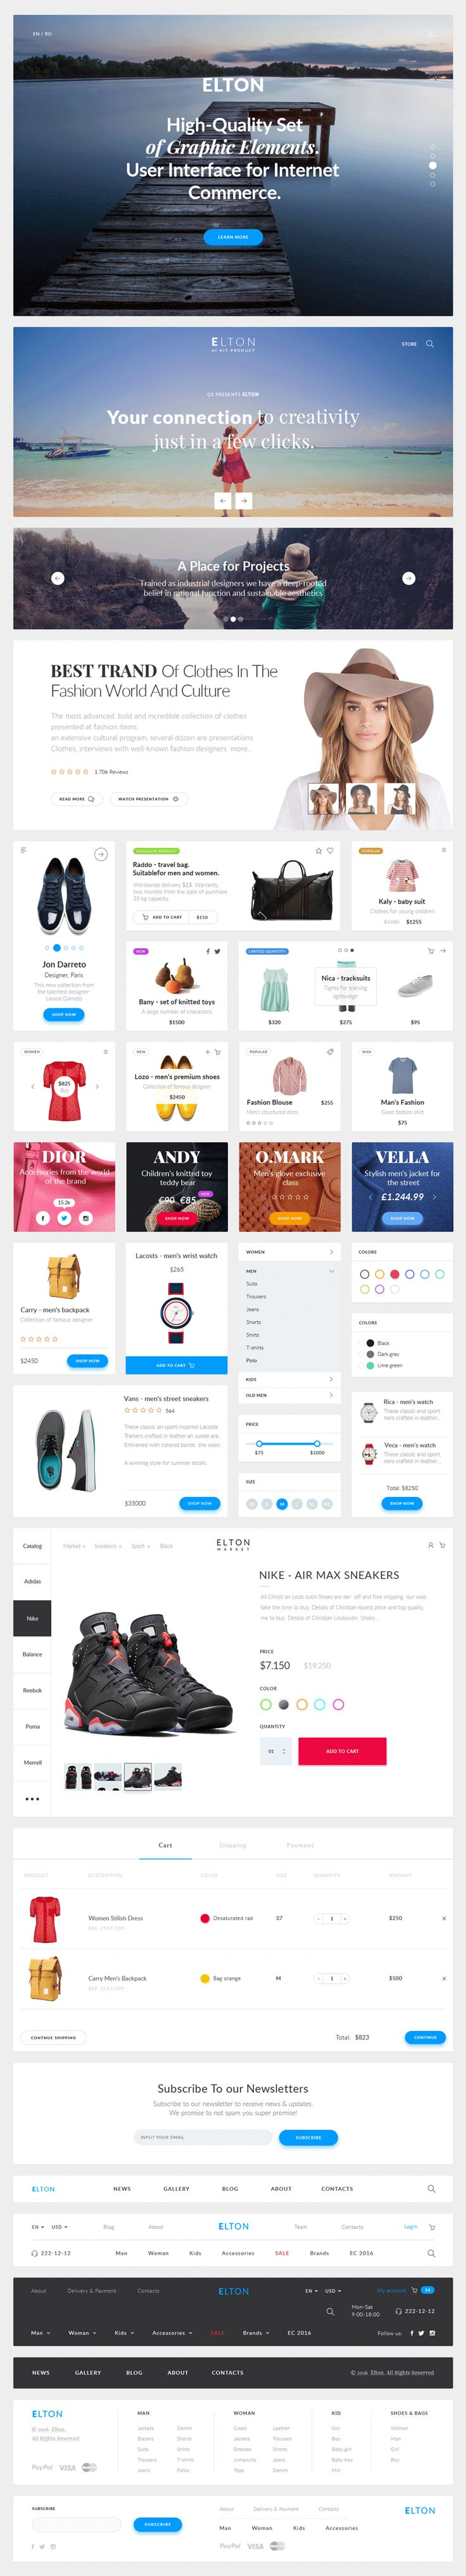 Elton is a clean freebie PSD eCommerce Ui Kit, which includes the following elements and widgets: sliders, product cards, filters, navigations, checkout element, subscribe form and footer section. Such a large number of components makes it a good helper and saves time for any web designer. Format: PSD Size: 25.4mb Author: Pixel Buddha